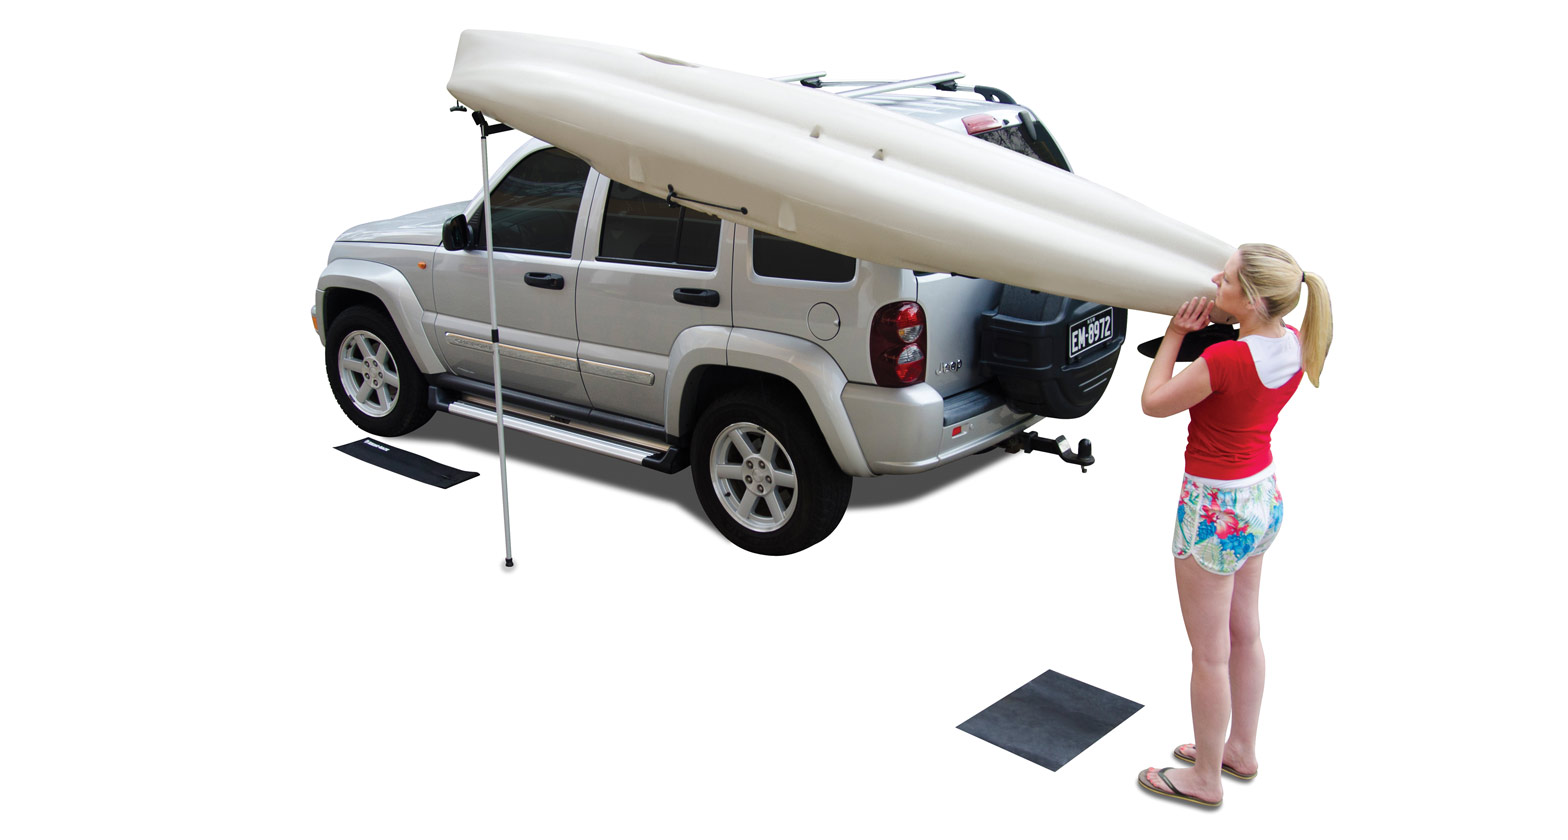 cargo for ladder commercial vans racks as upfits rack list category ladderracks shop suv